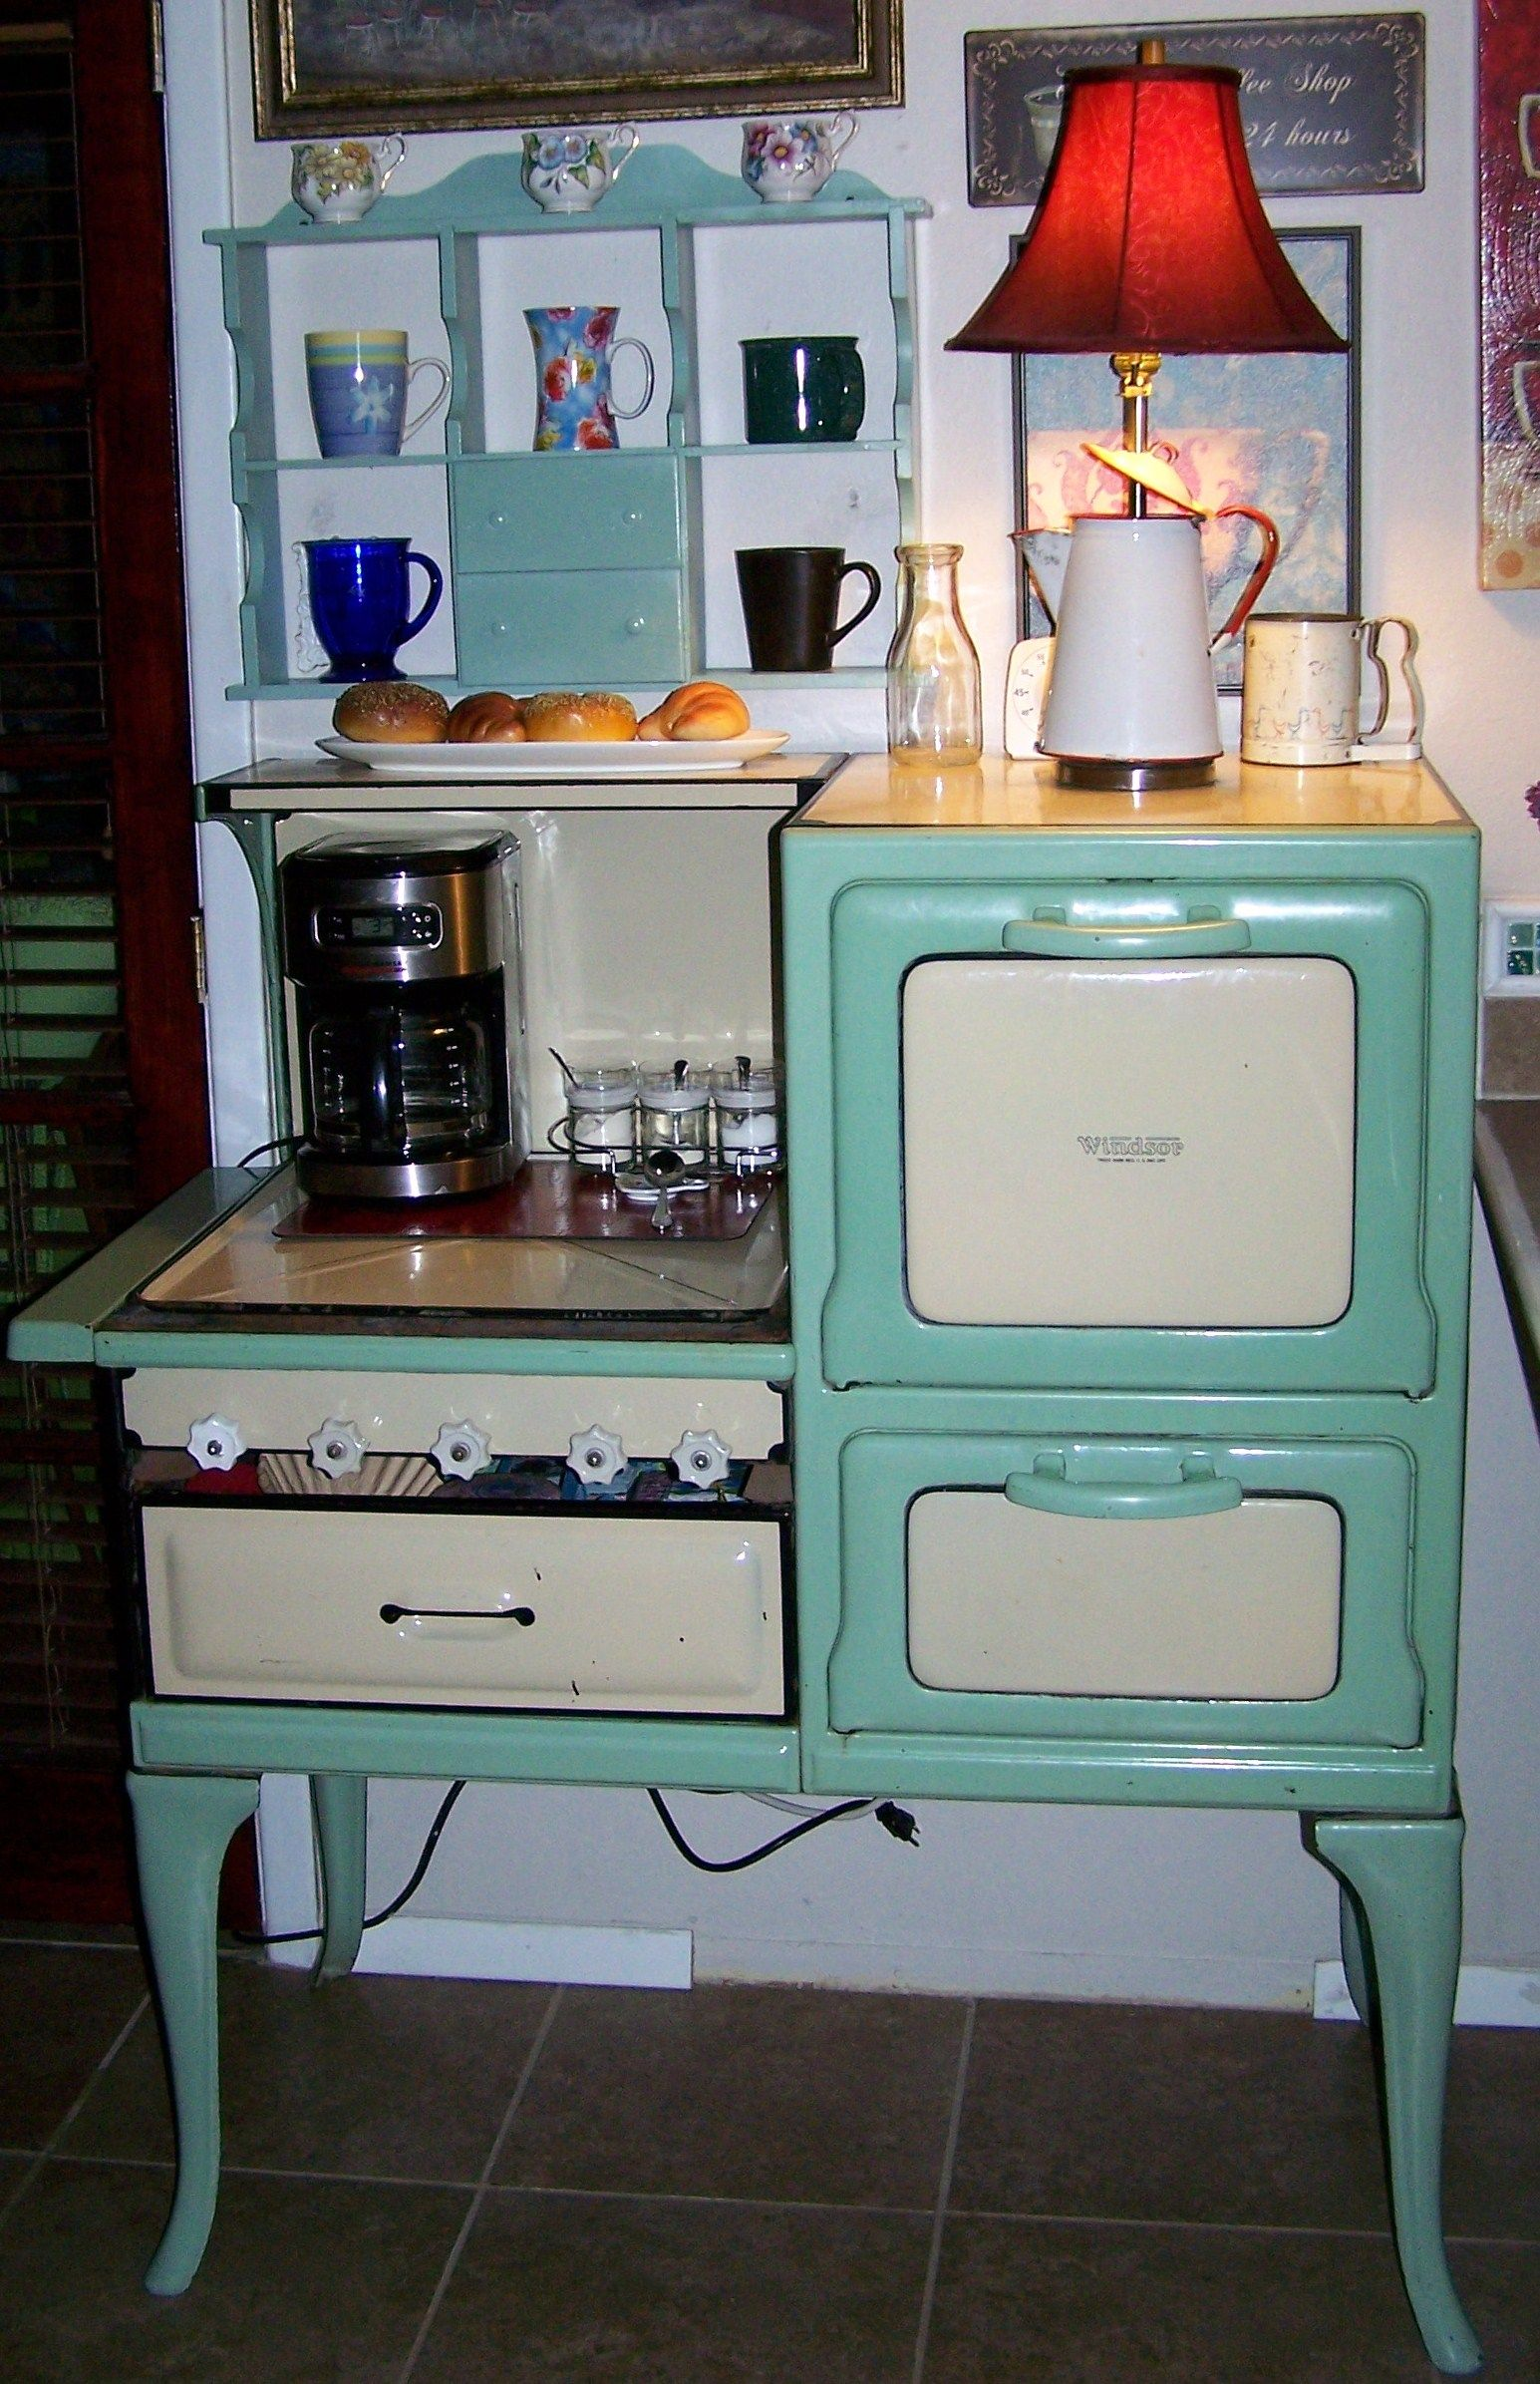 My New Coffee bar from a vintage Windsor Stove! My husband fashioned ...